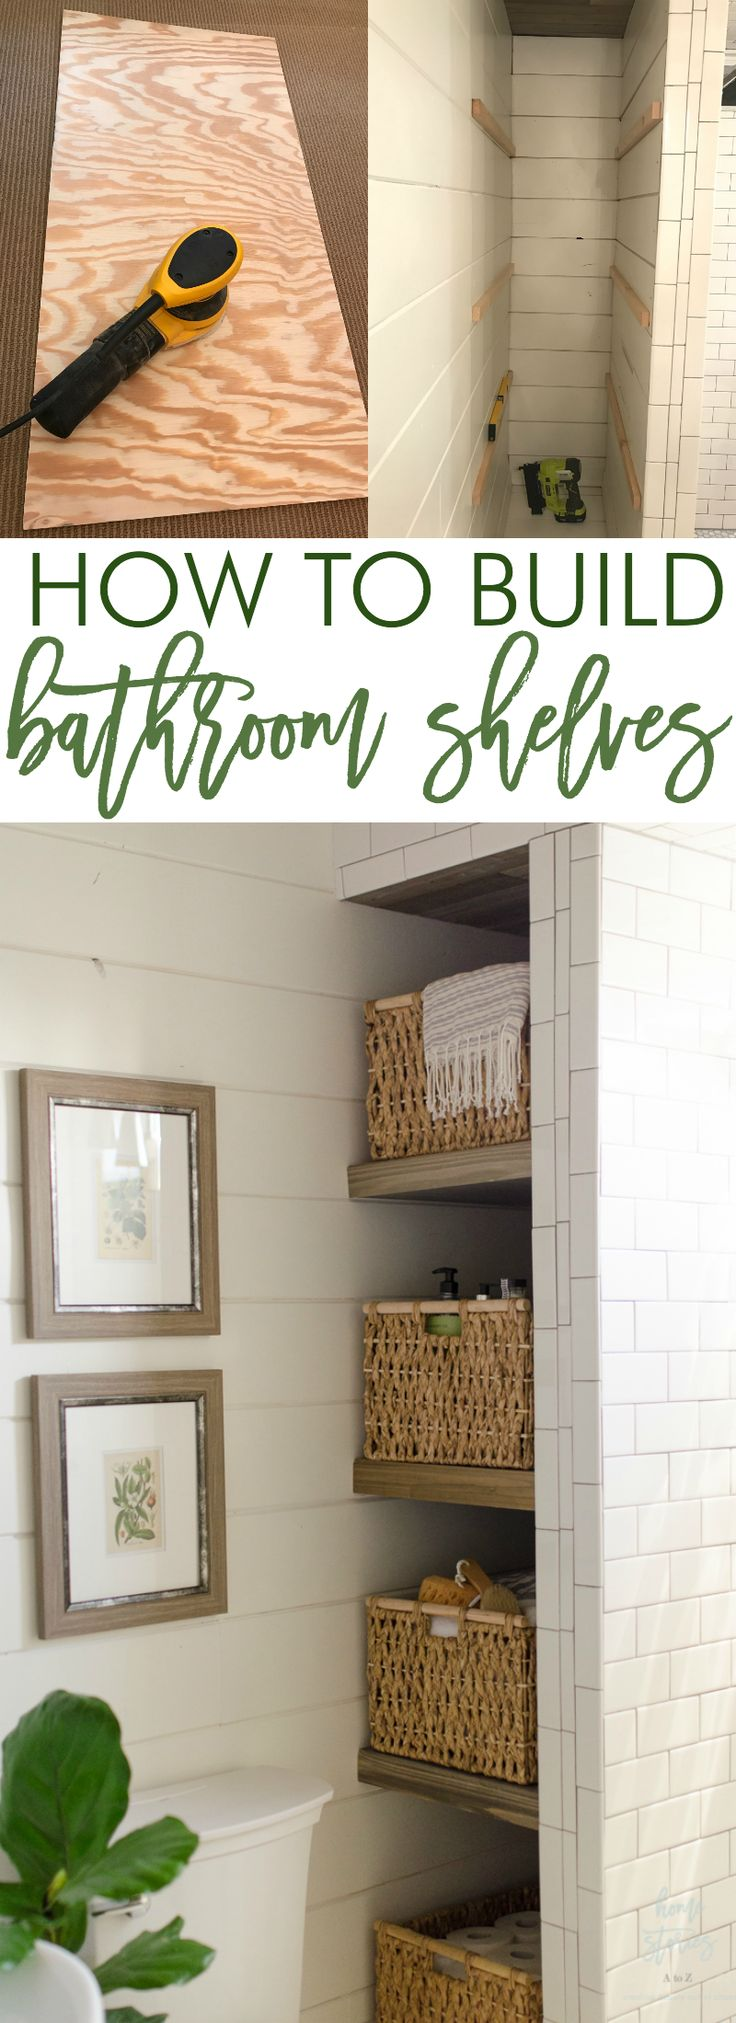 Best 25 Bathroom Shelves Ideas On Pinterest  Half Bathroom Decor Delectable Shelves For Small Bathroom Design Inspiration